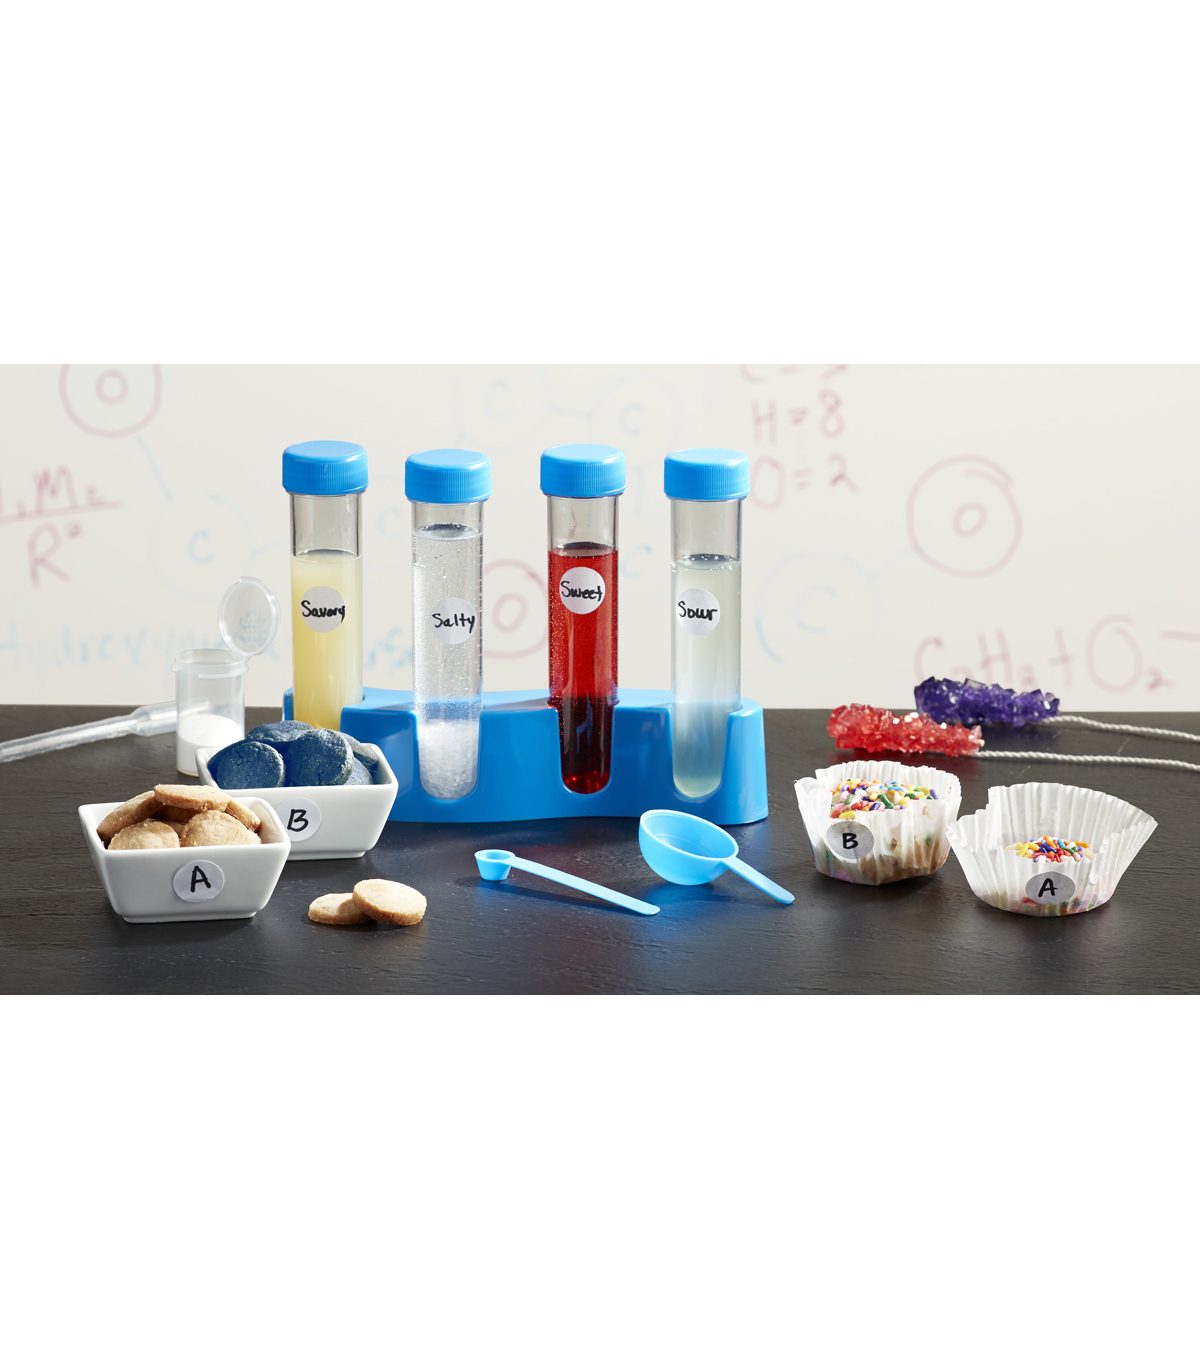 Scientific Explorers Tasty Science Kit